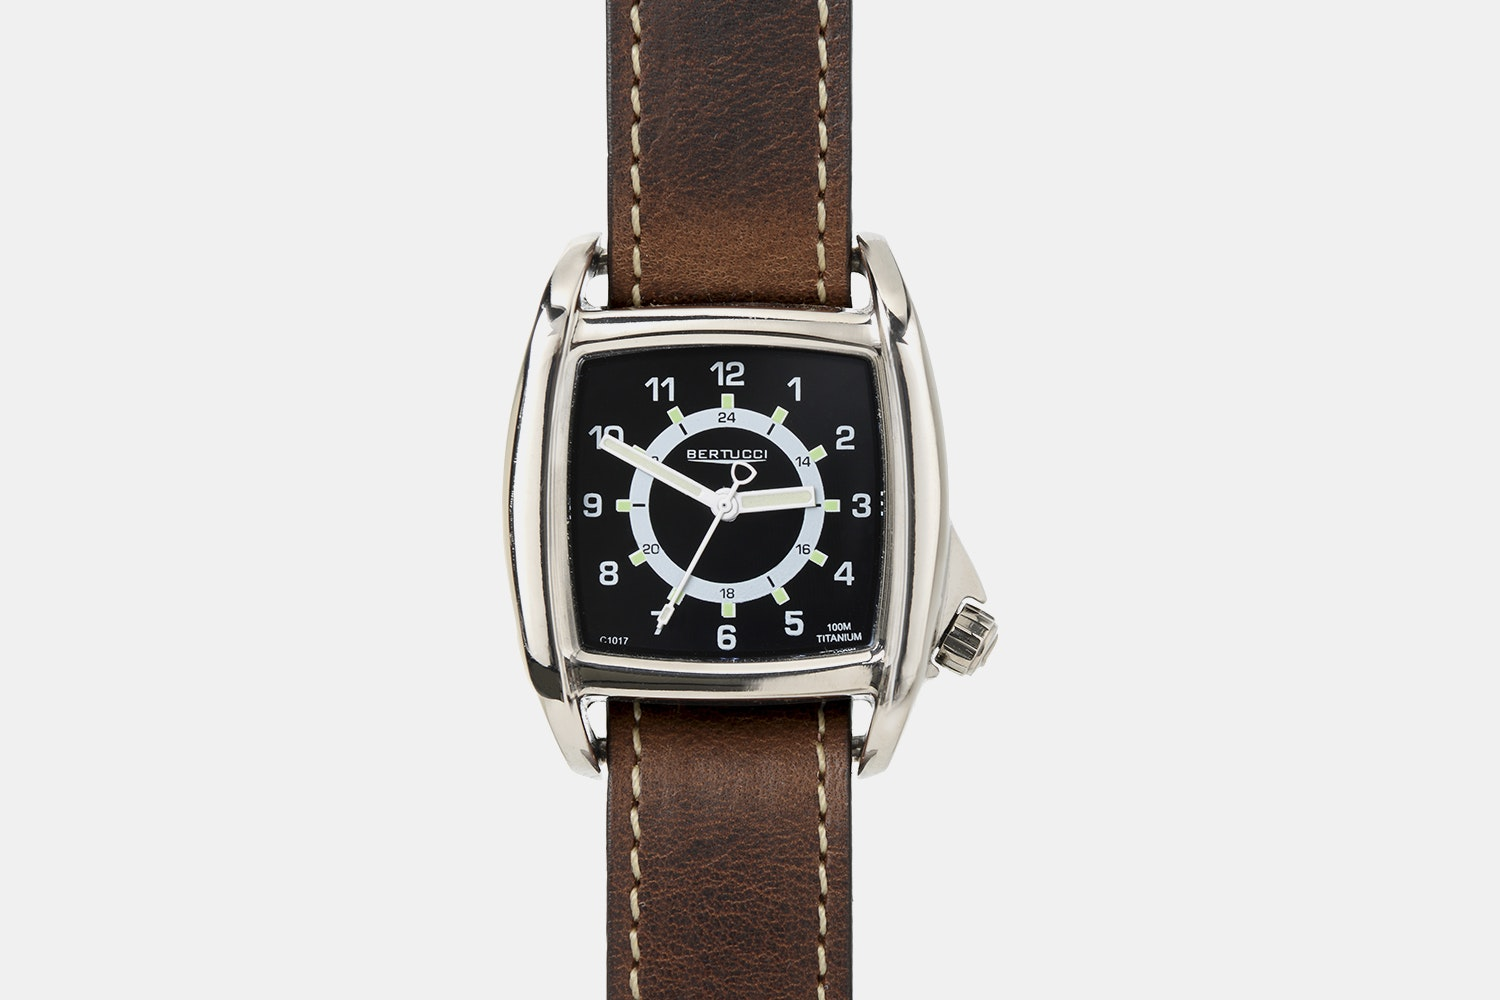 Onyx Black Dial, Nut Brown Leather Band (+ $14)